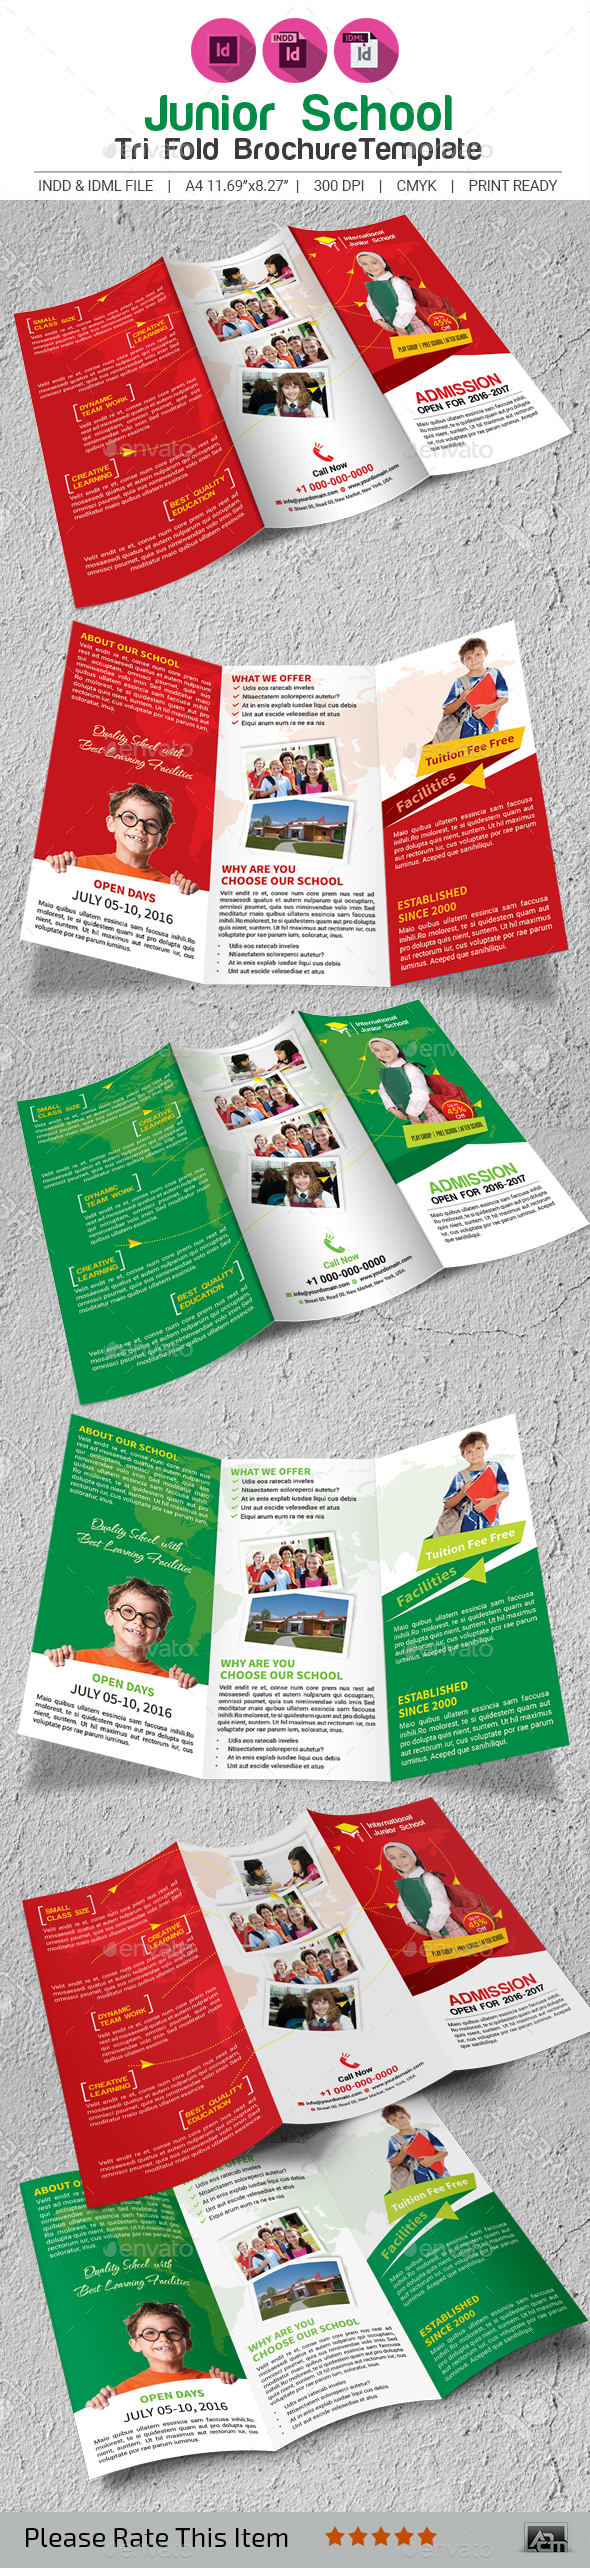 Junior School Brochure Template - Corporate Flyers